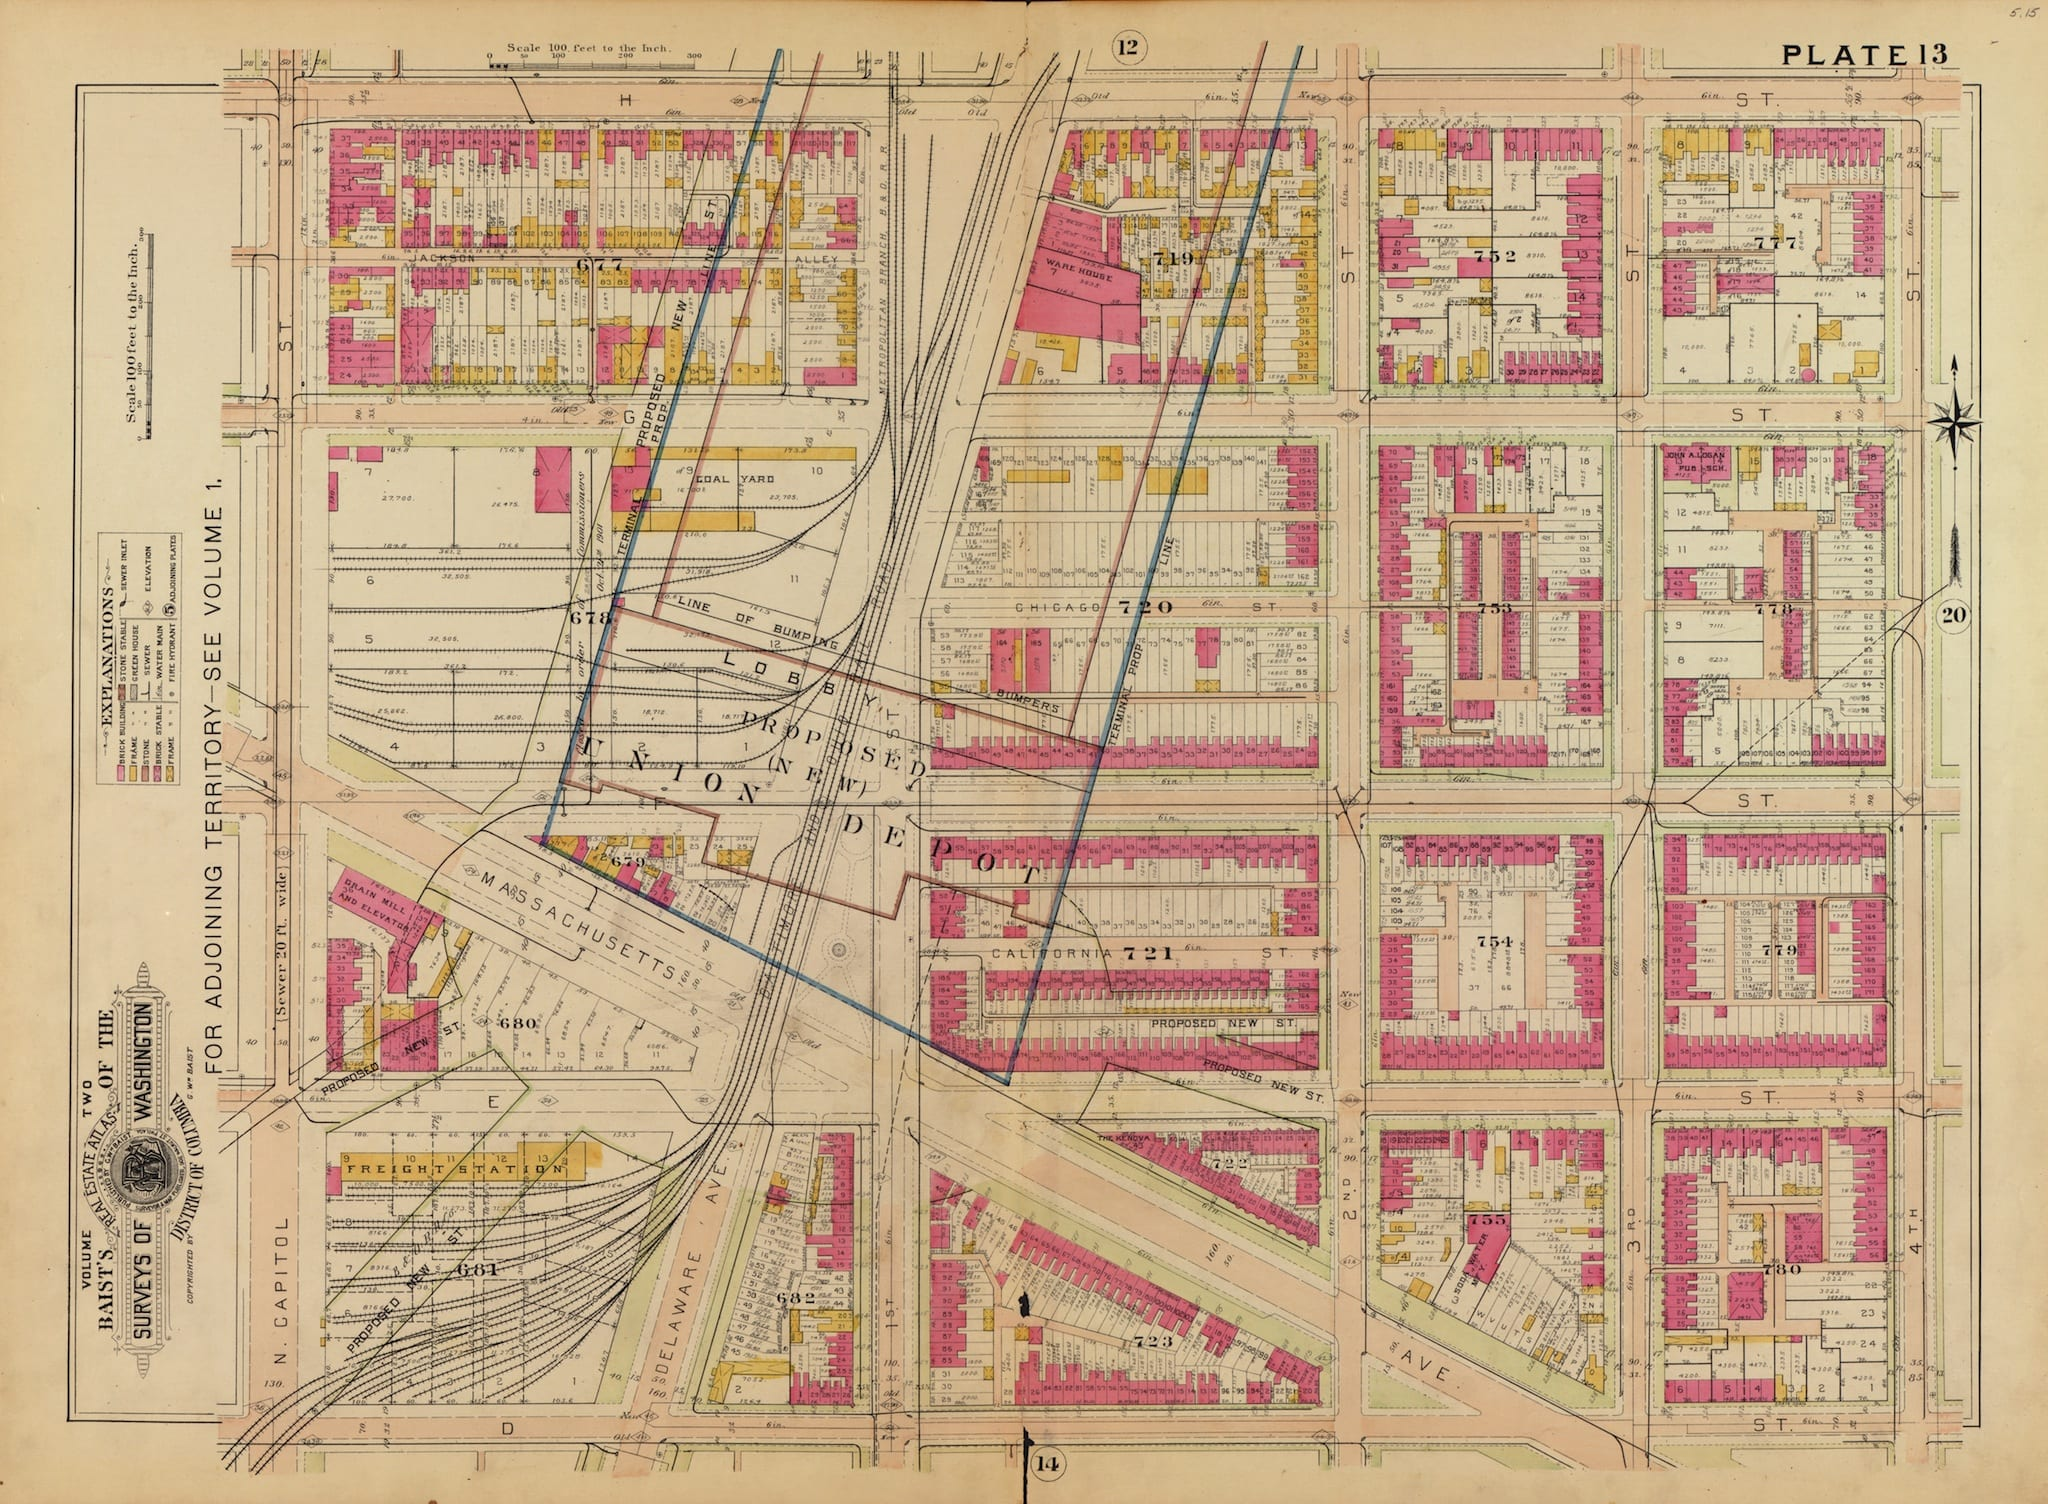 1903 map of Swampoodle